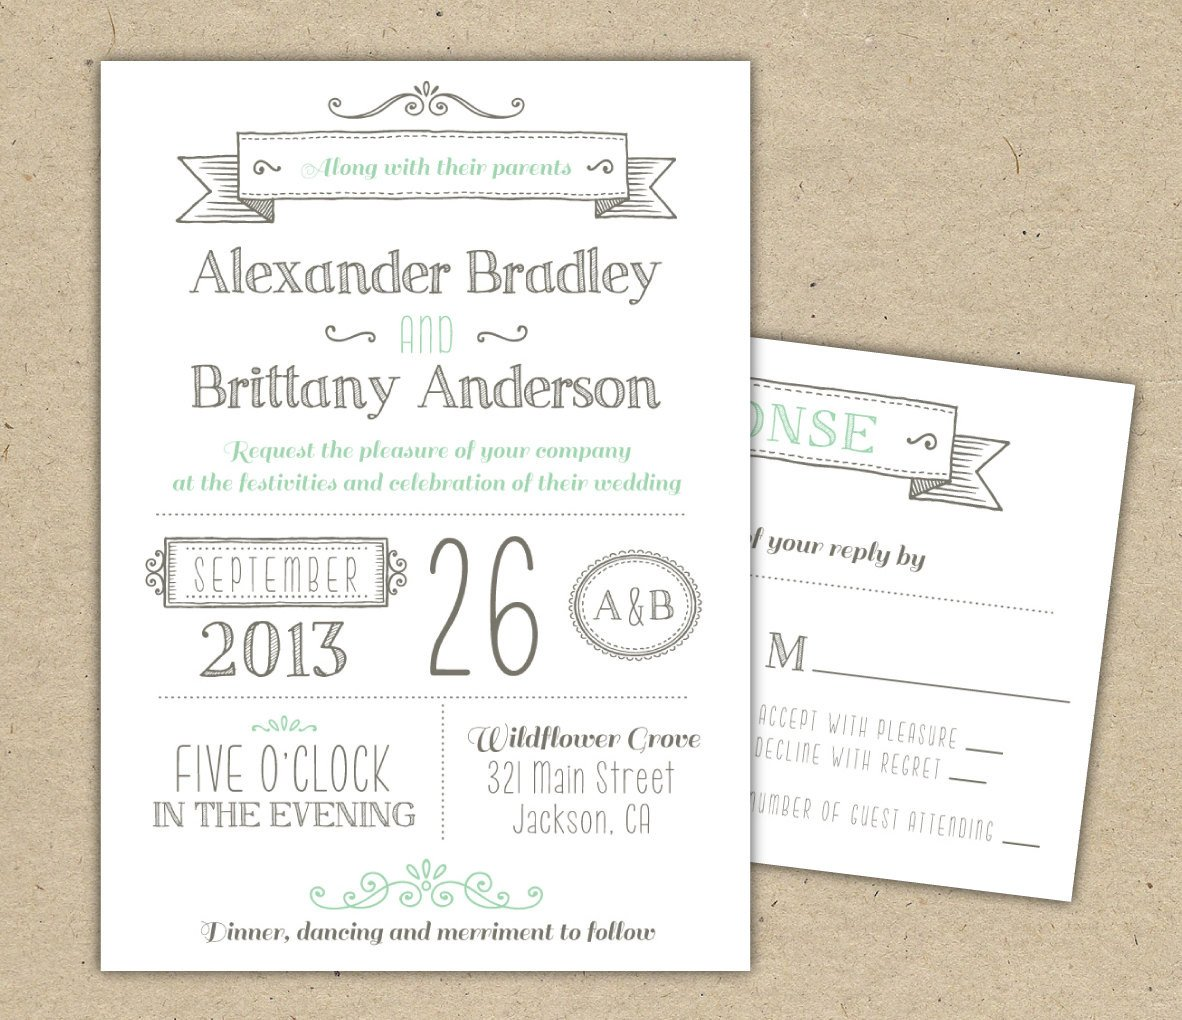 Template for Wedding Invitations Wedding Invitation 1041 Sample Modern Invitation Template